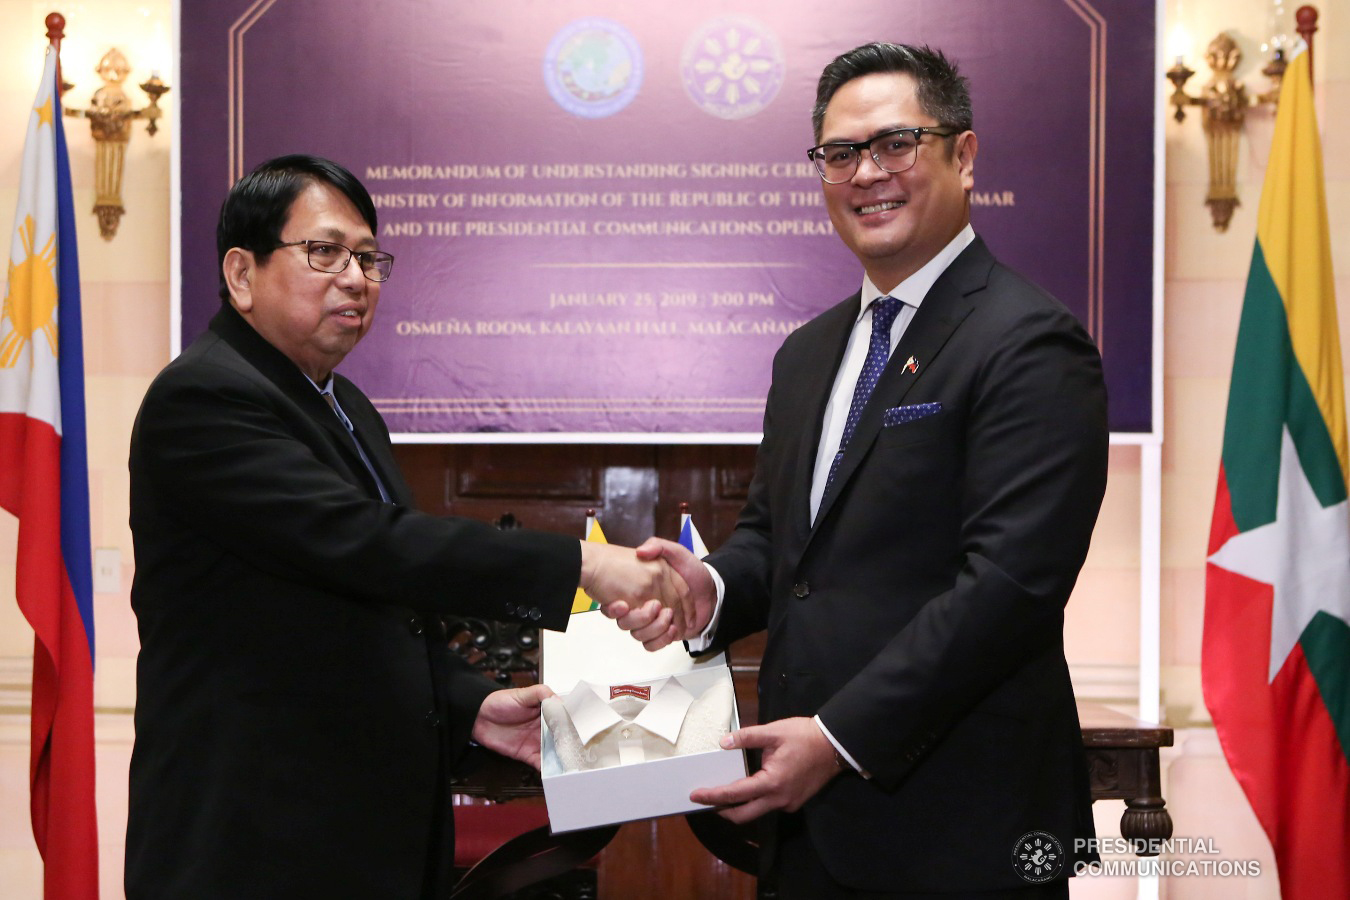 Presidential Communications Operations Office (PCOO) Secretary Martin Andanar hands over a token to Myanmar Minister of Information Pe Myint following the   signing of the Memorandum of Understanding at the Kalayaan Hall in Malacañang on January 25, 2019. ALBERT ALCAIN/PRESIDENTIAL PHOTO